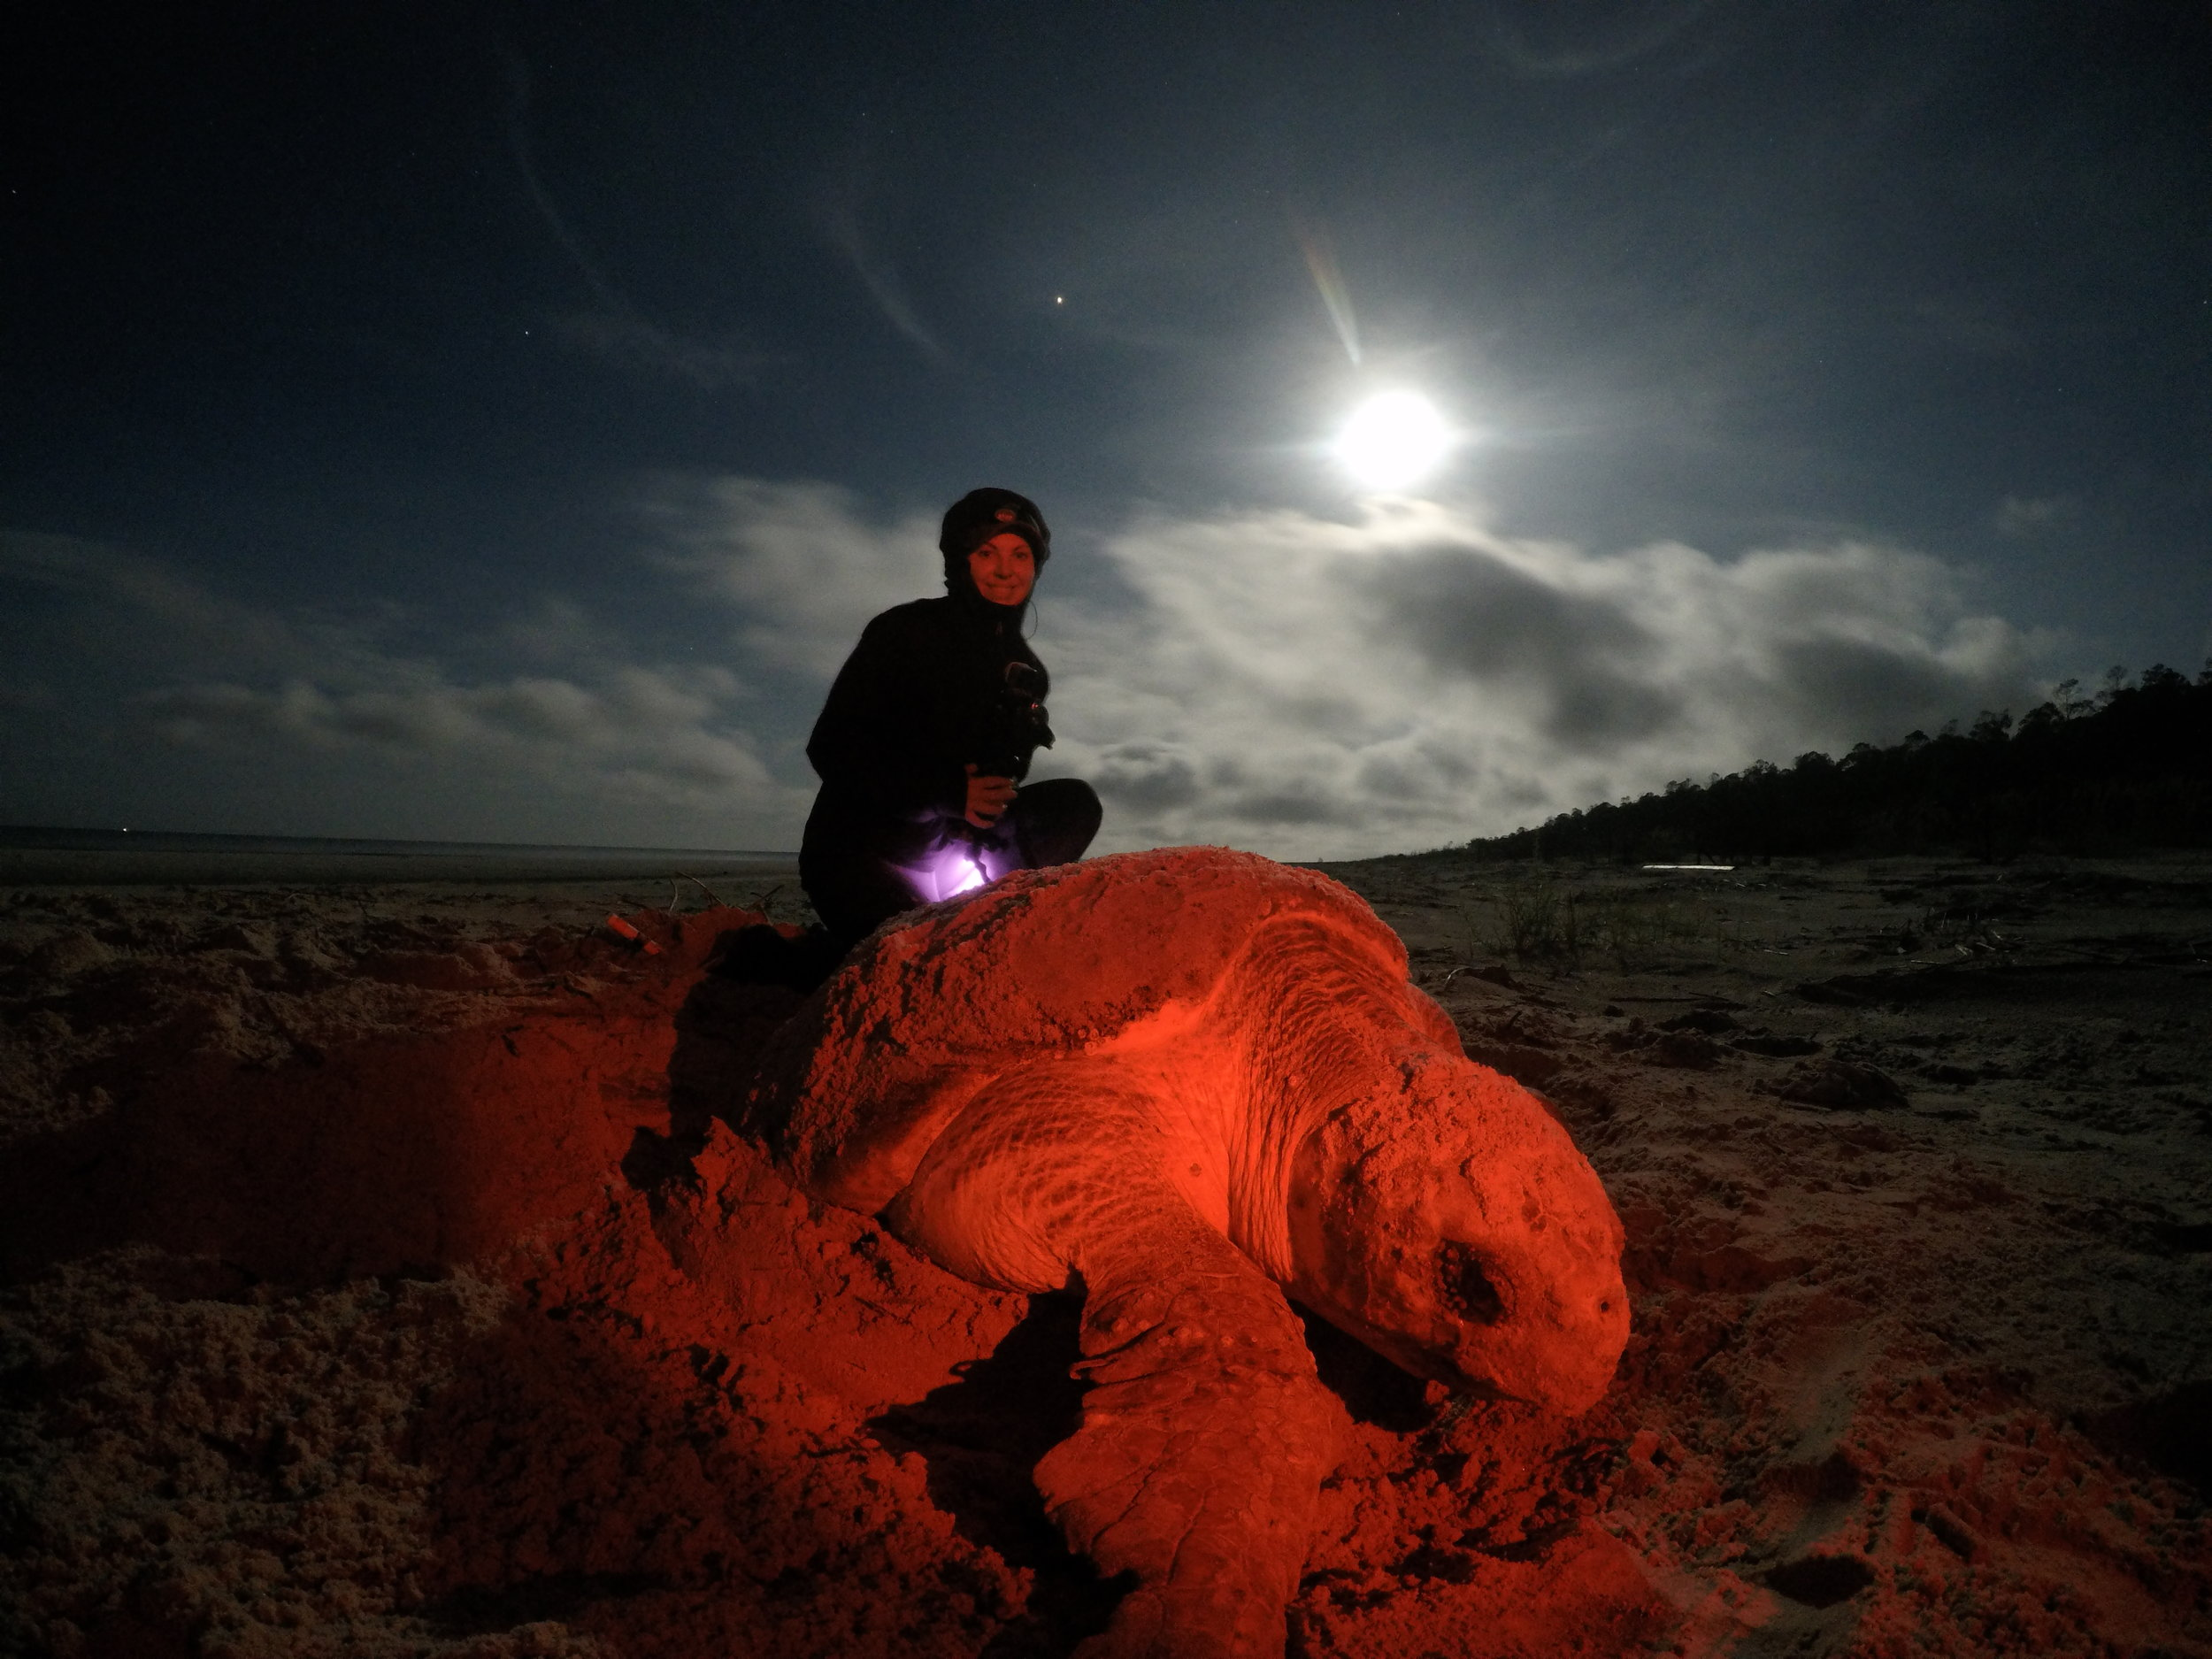 Gopro image of me after a night of filming nesting loggerhead sea turtles. It was my first time ever seeing a wild sea turtle and filming with night vision.